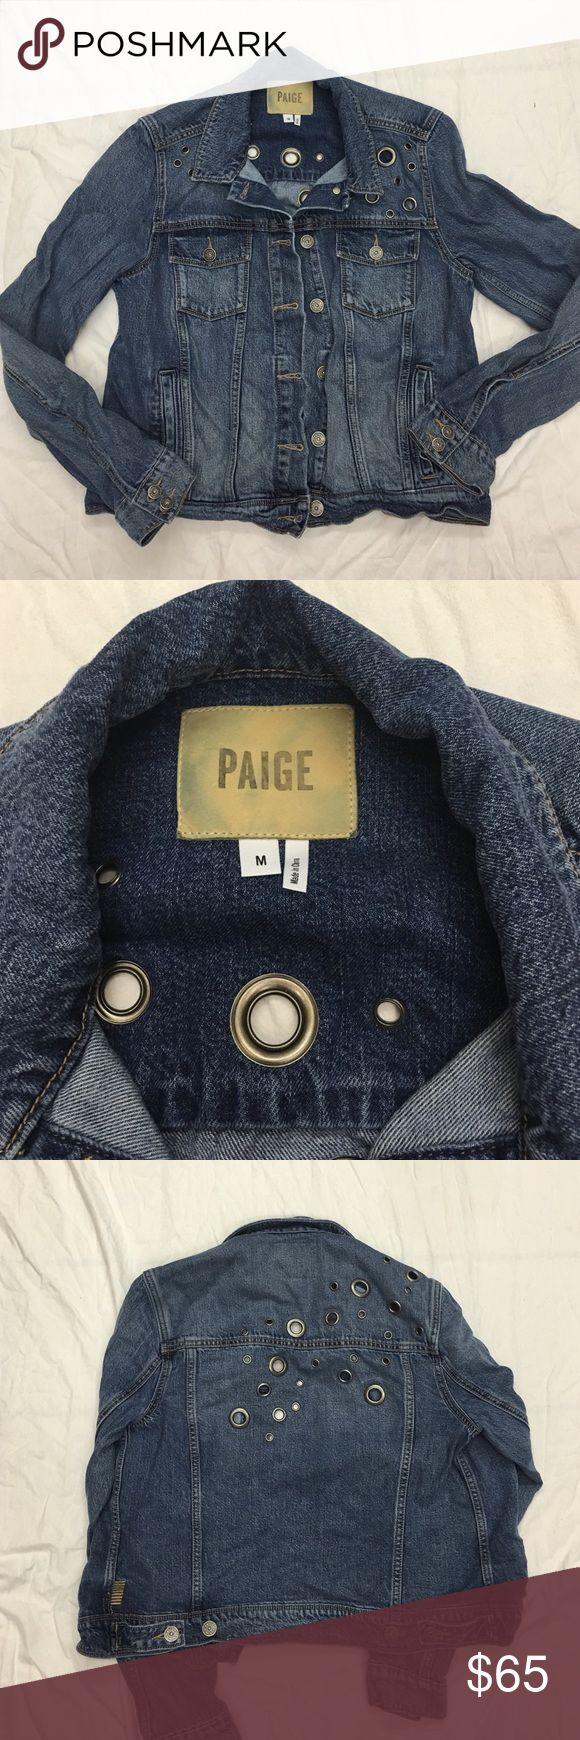 Paige denim jacket with grommets This jacket has only been worn once. Very cute detail with grommets. Still for sale through page for over $200!! Runs small I would say this is more like a size small Paige Jeans Jackets & Coats Jean Jackets